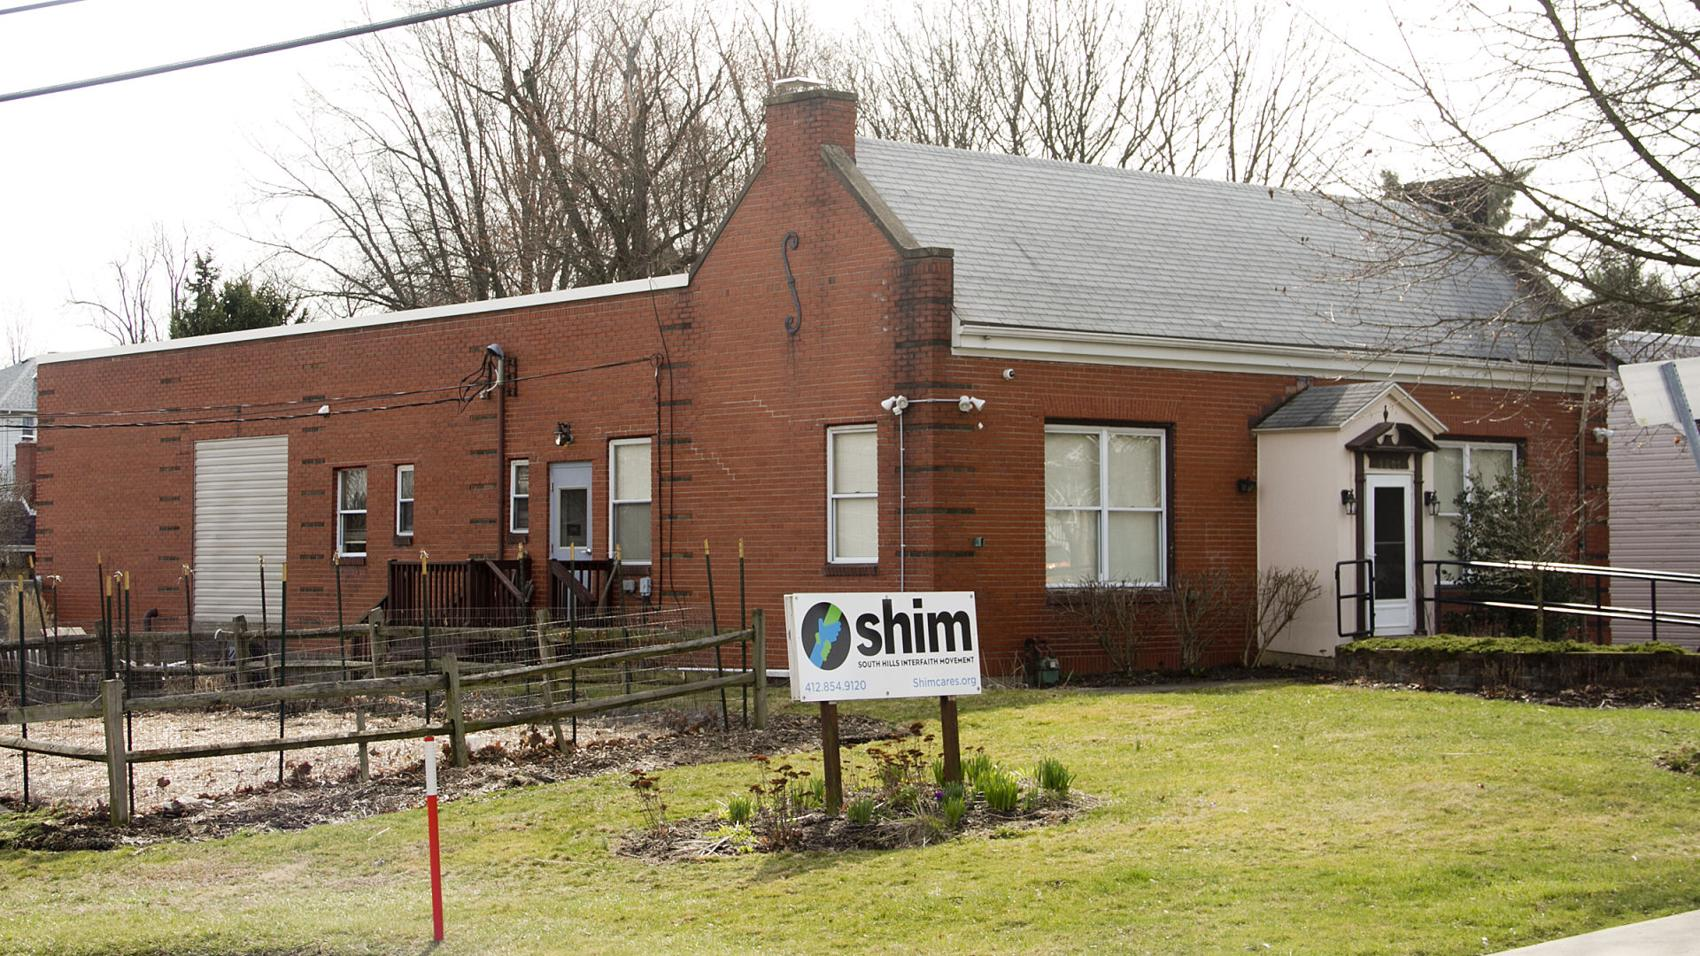 The South Hills Interfaith Movement location in Bethel Park